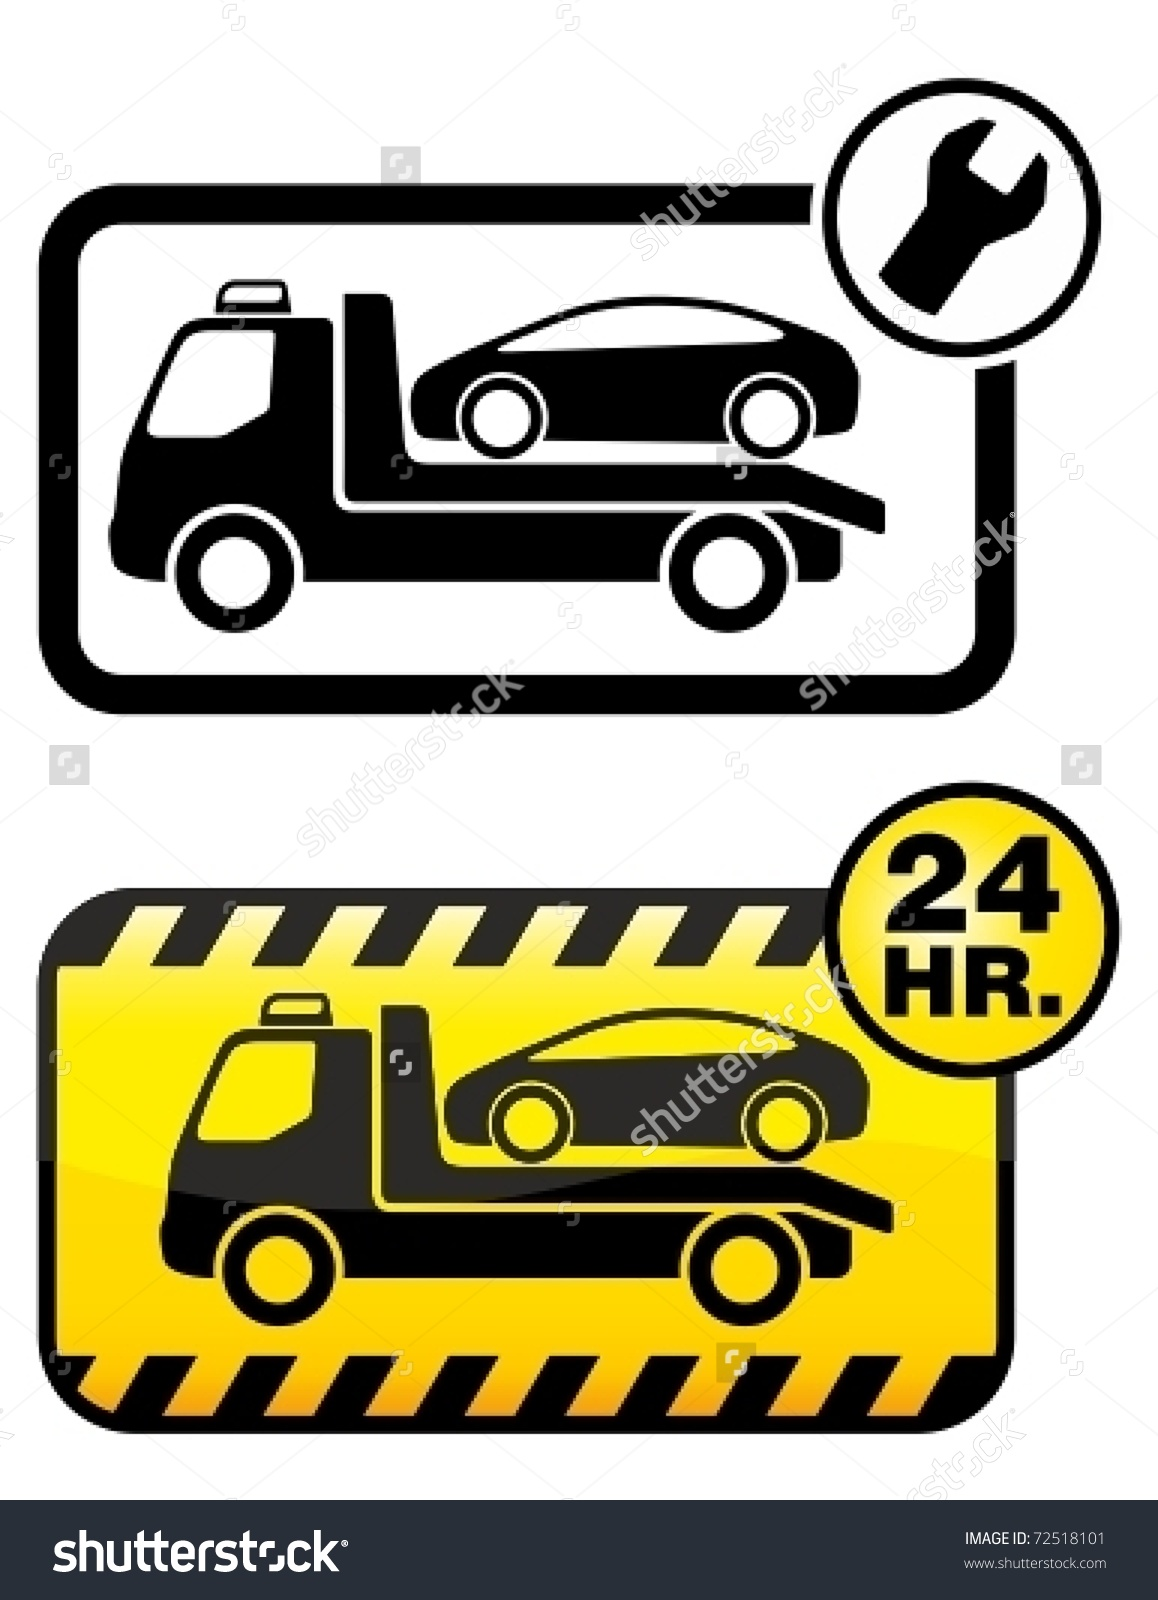 Roadside assistance clipart.